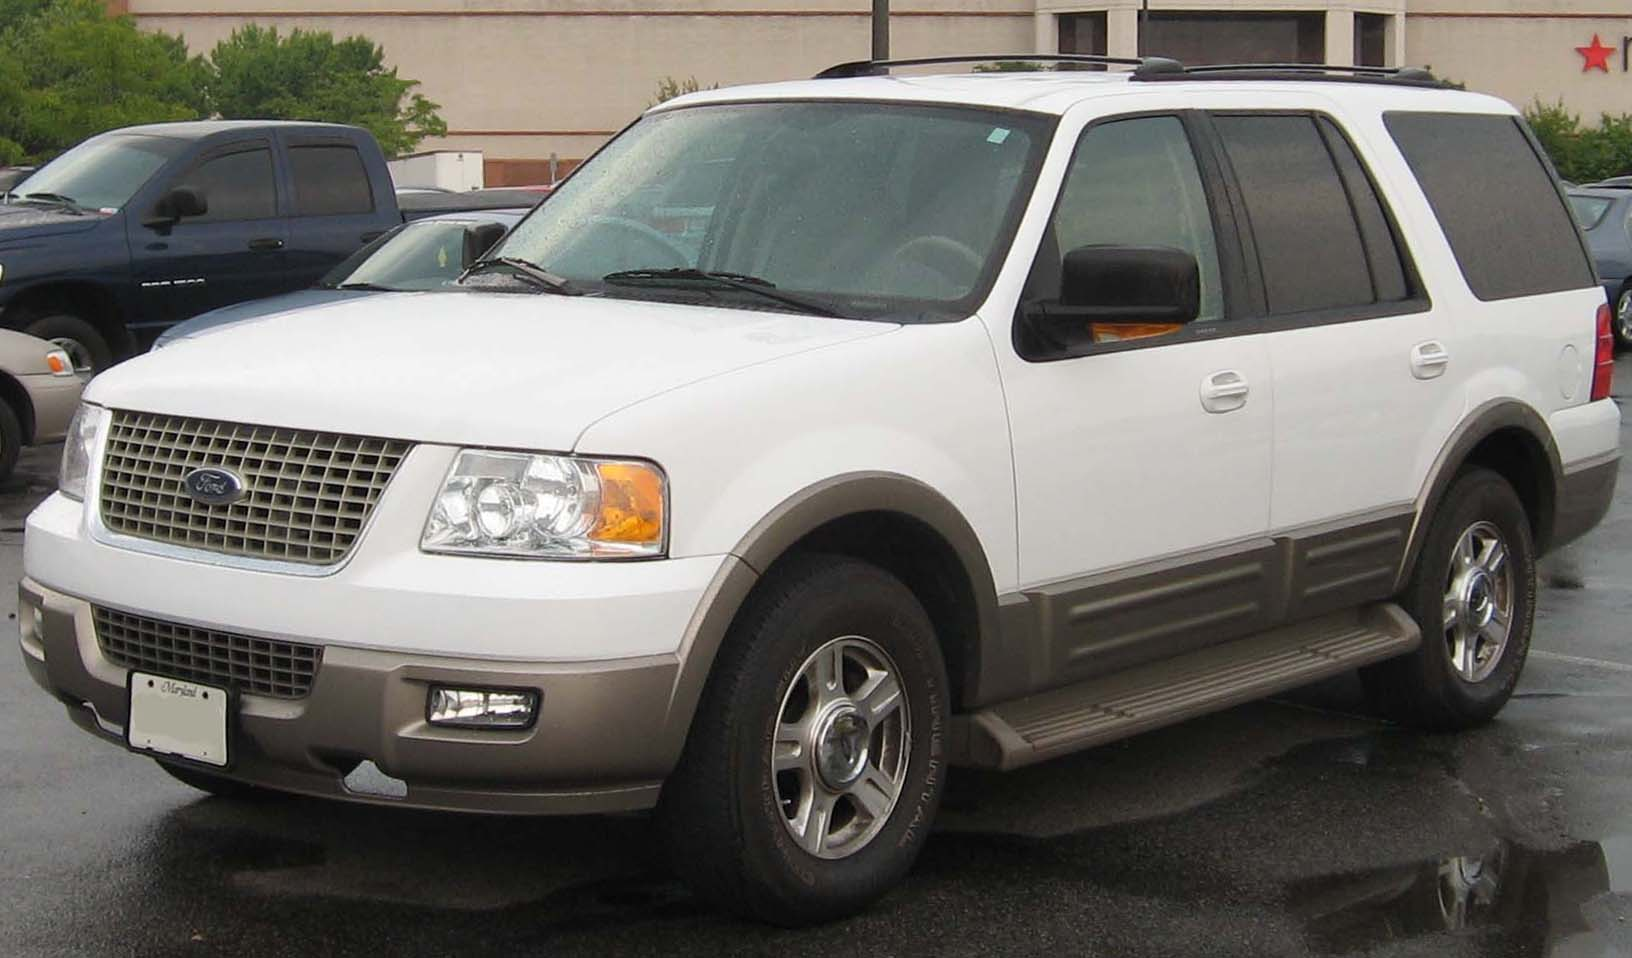 Ford Expedition #21